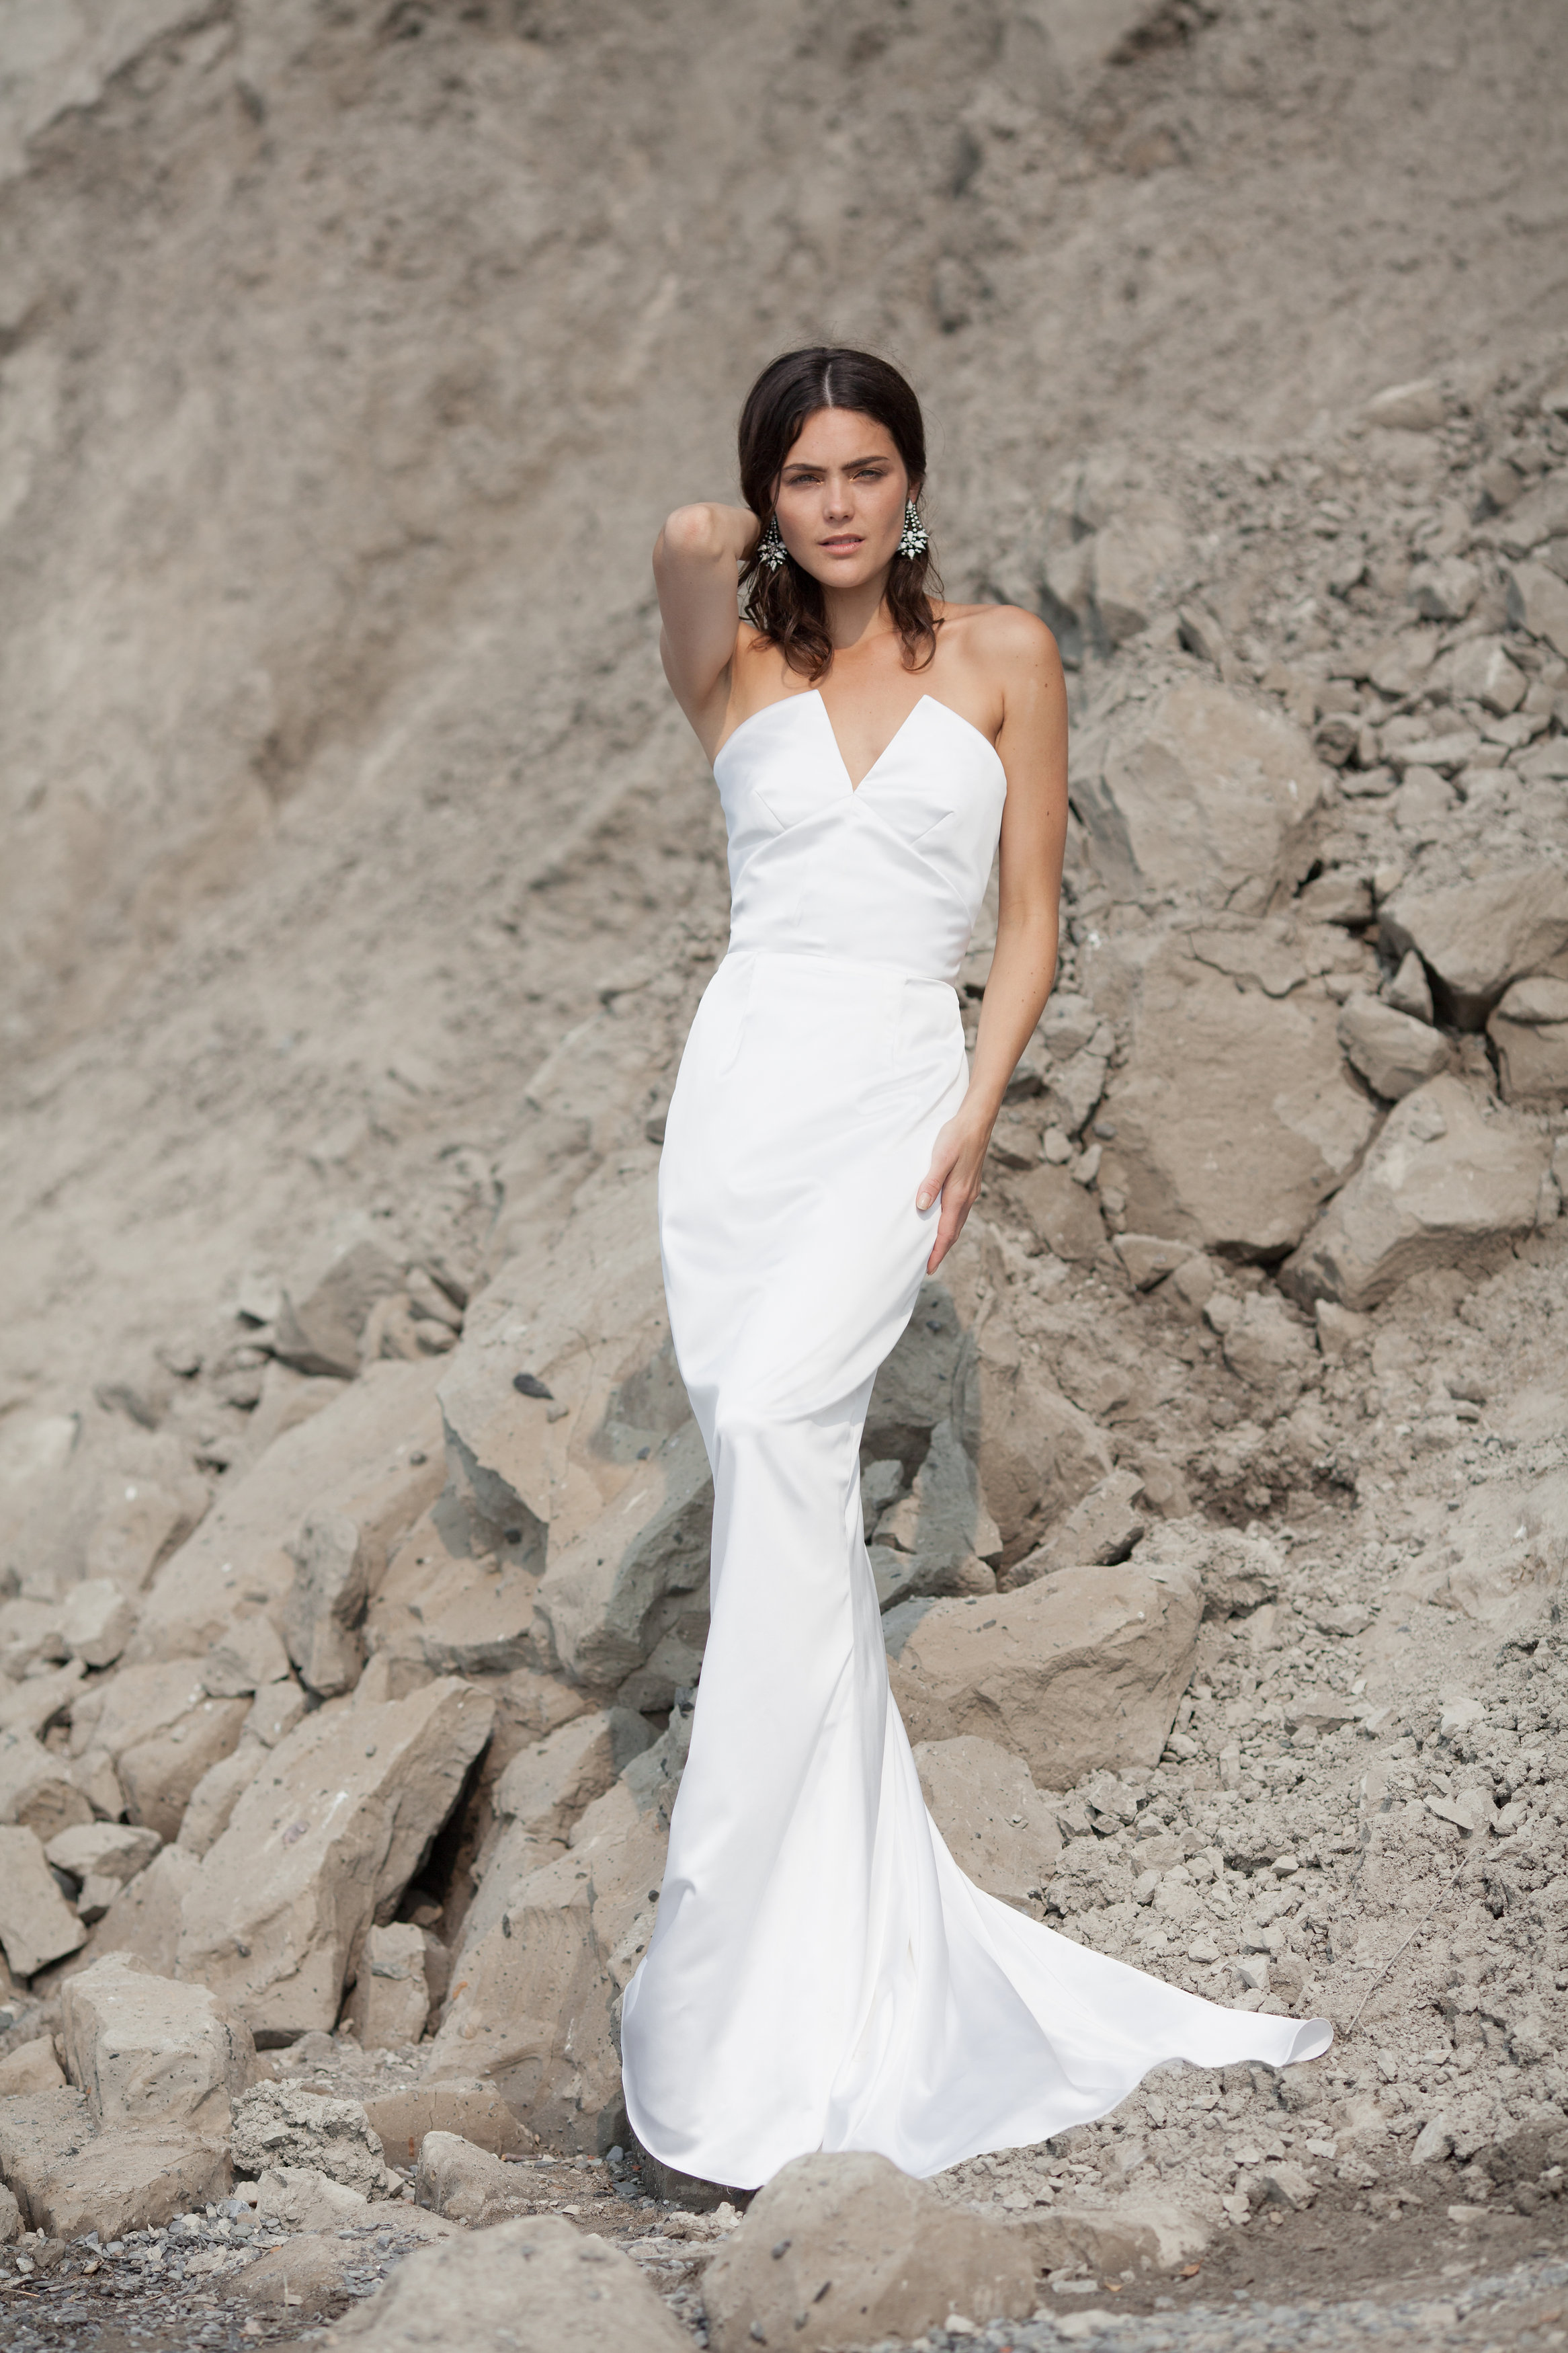 Archive 12 wedding dress sample sale ireland